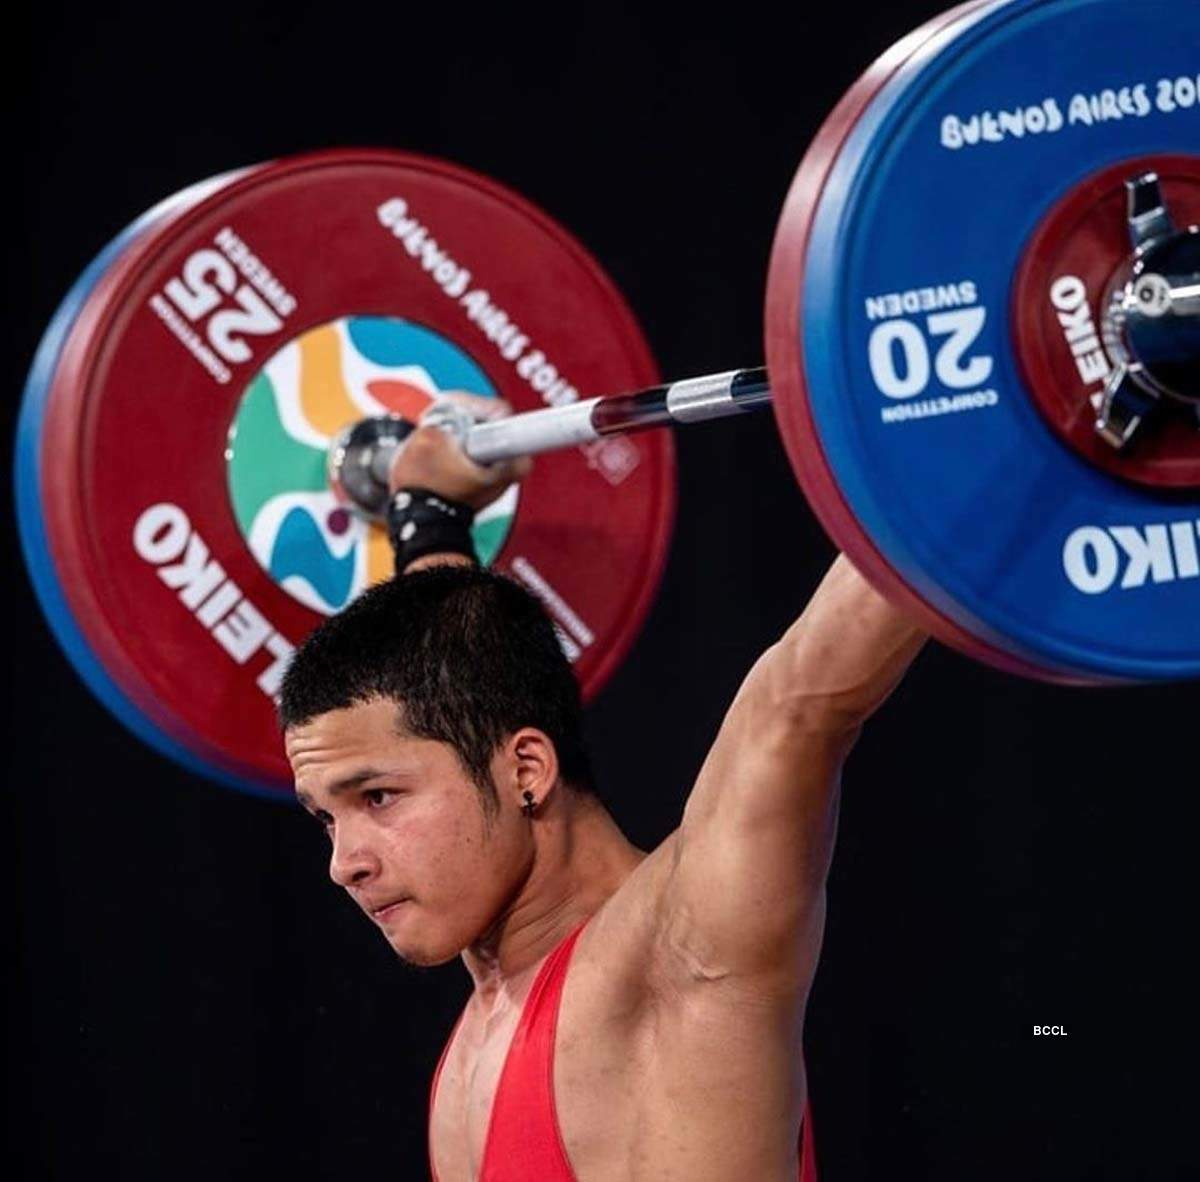 Jeremy Lalrinnunga from Mizoram is the Indian weightlifter to watch out for in future